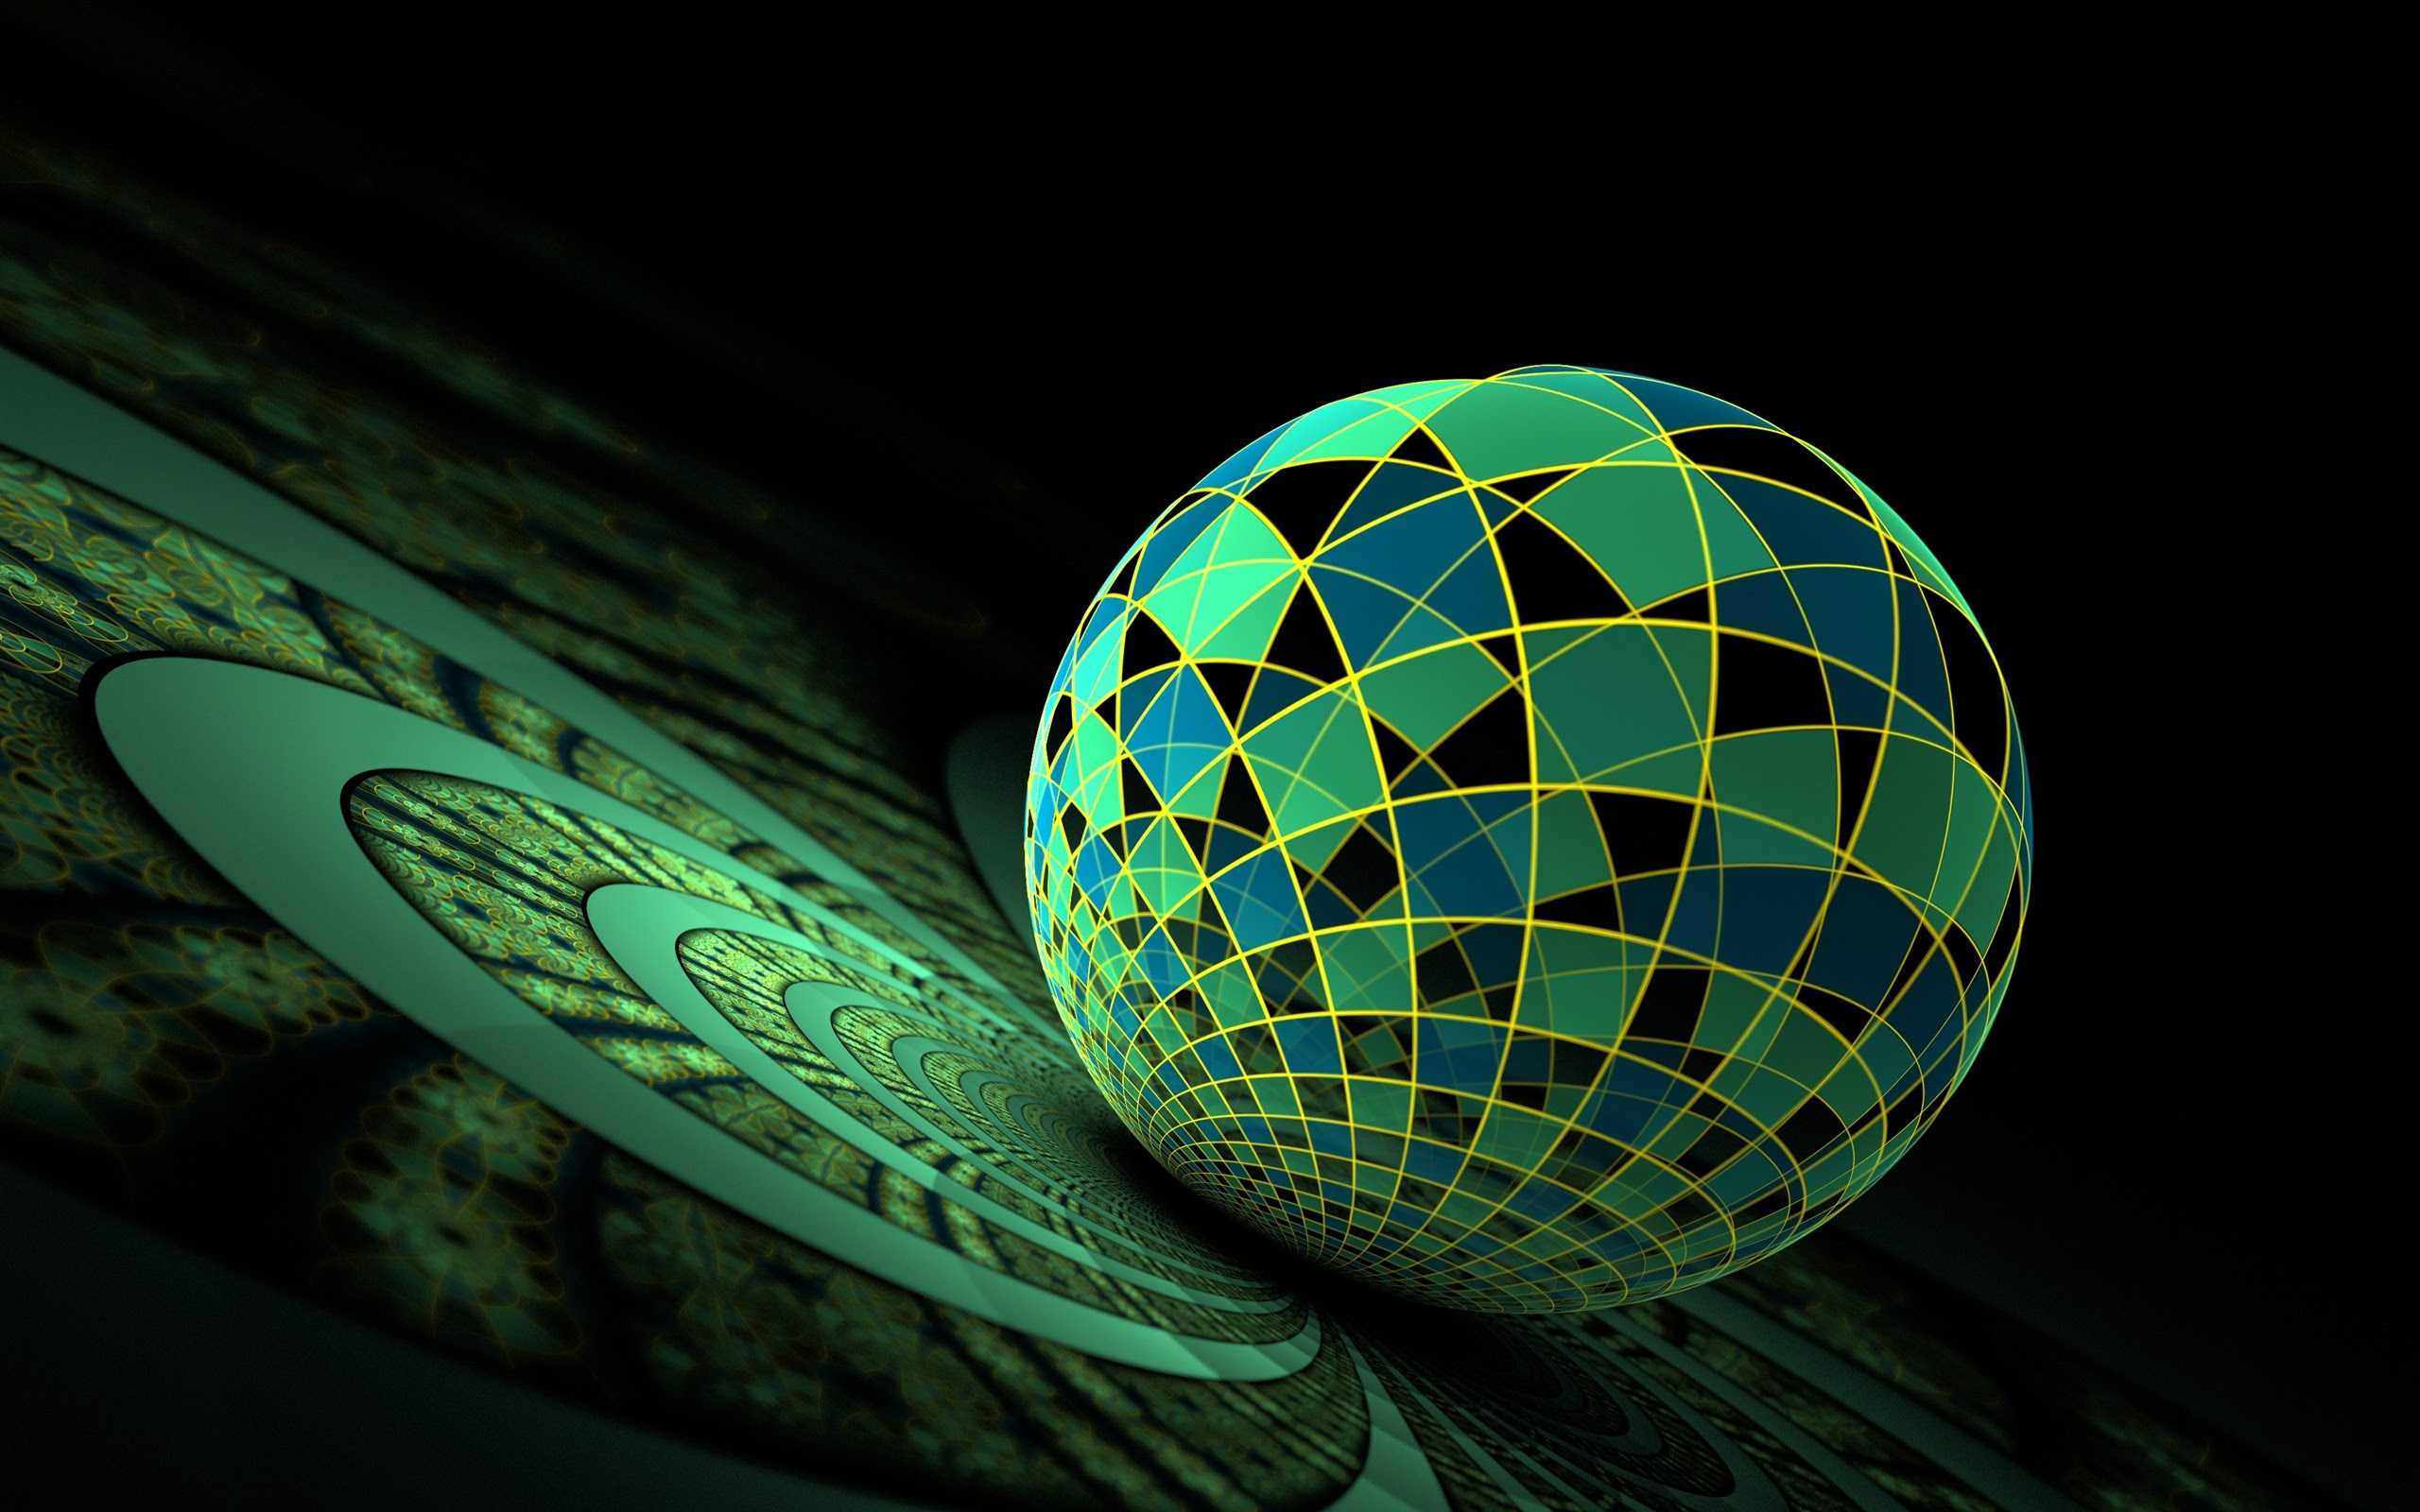 3D Wallpapers Wallpapers High Quality  Download Free